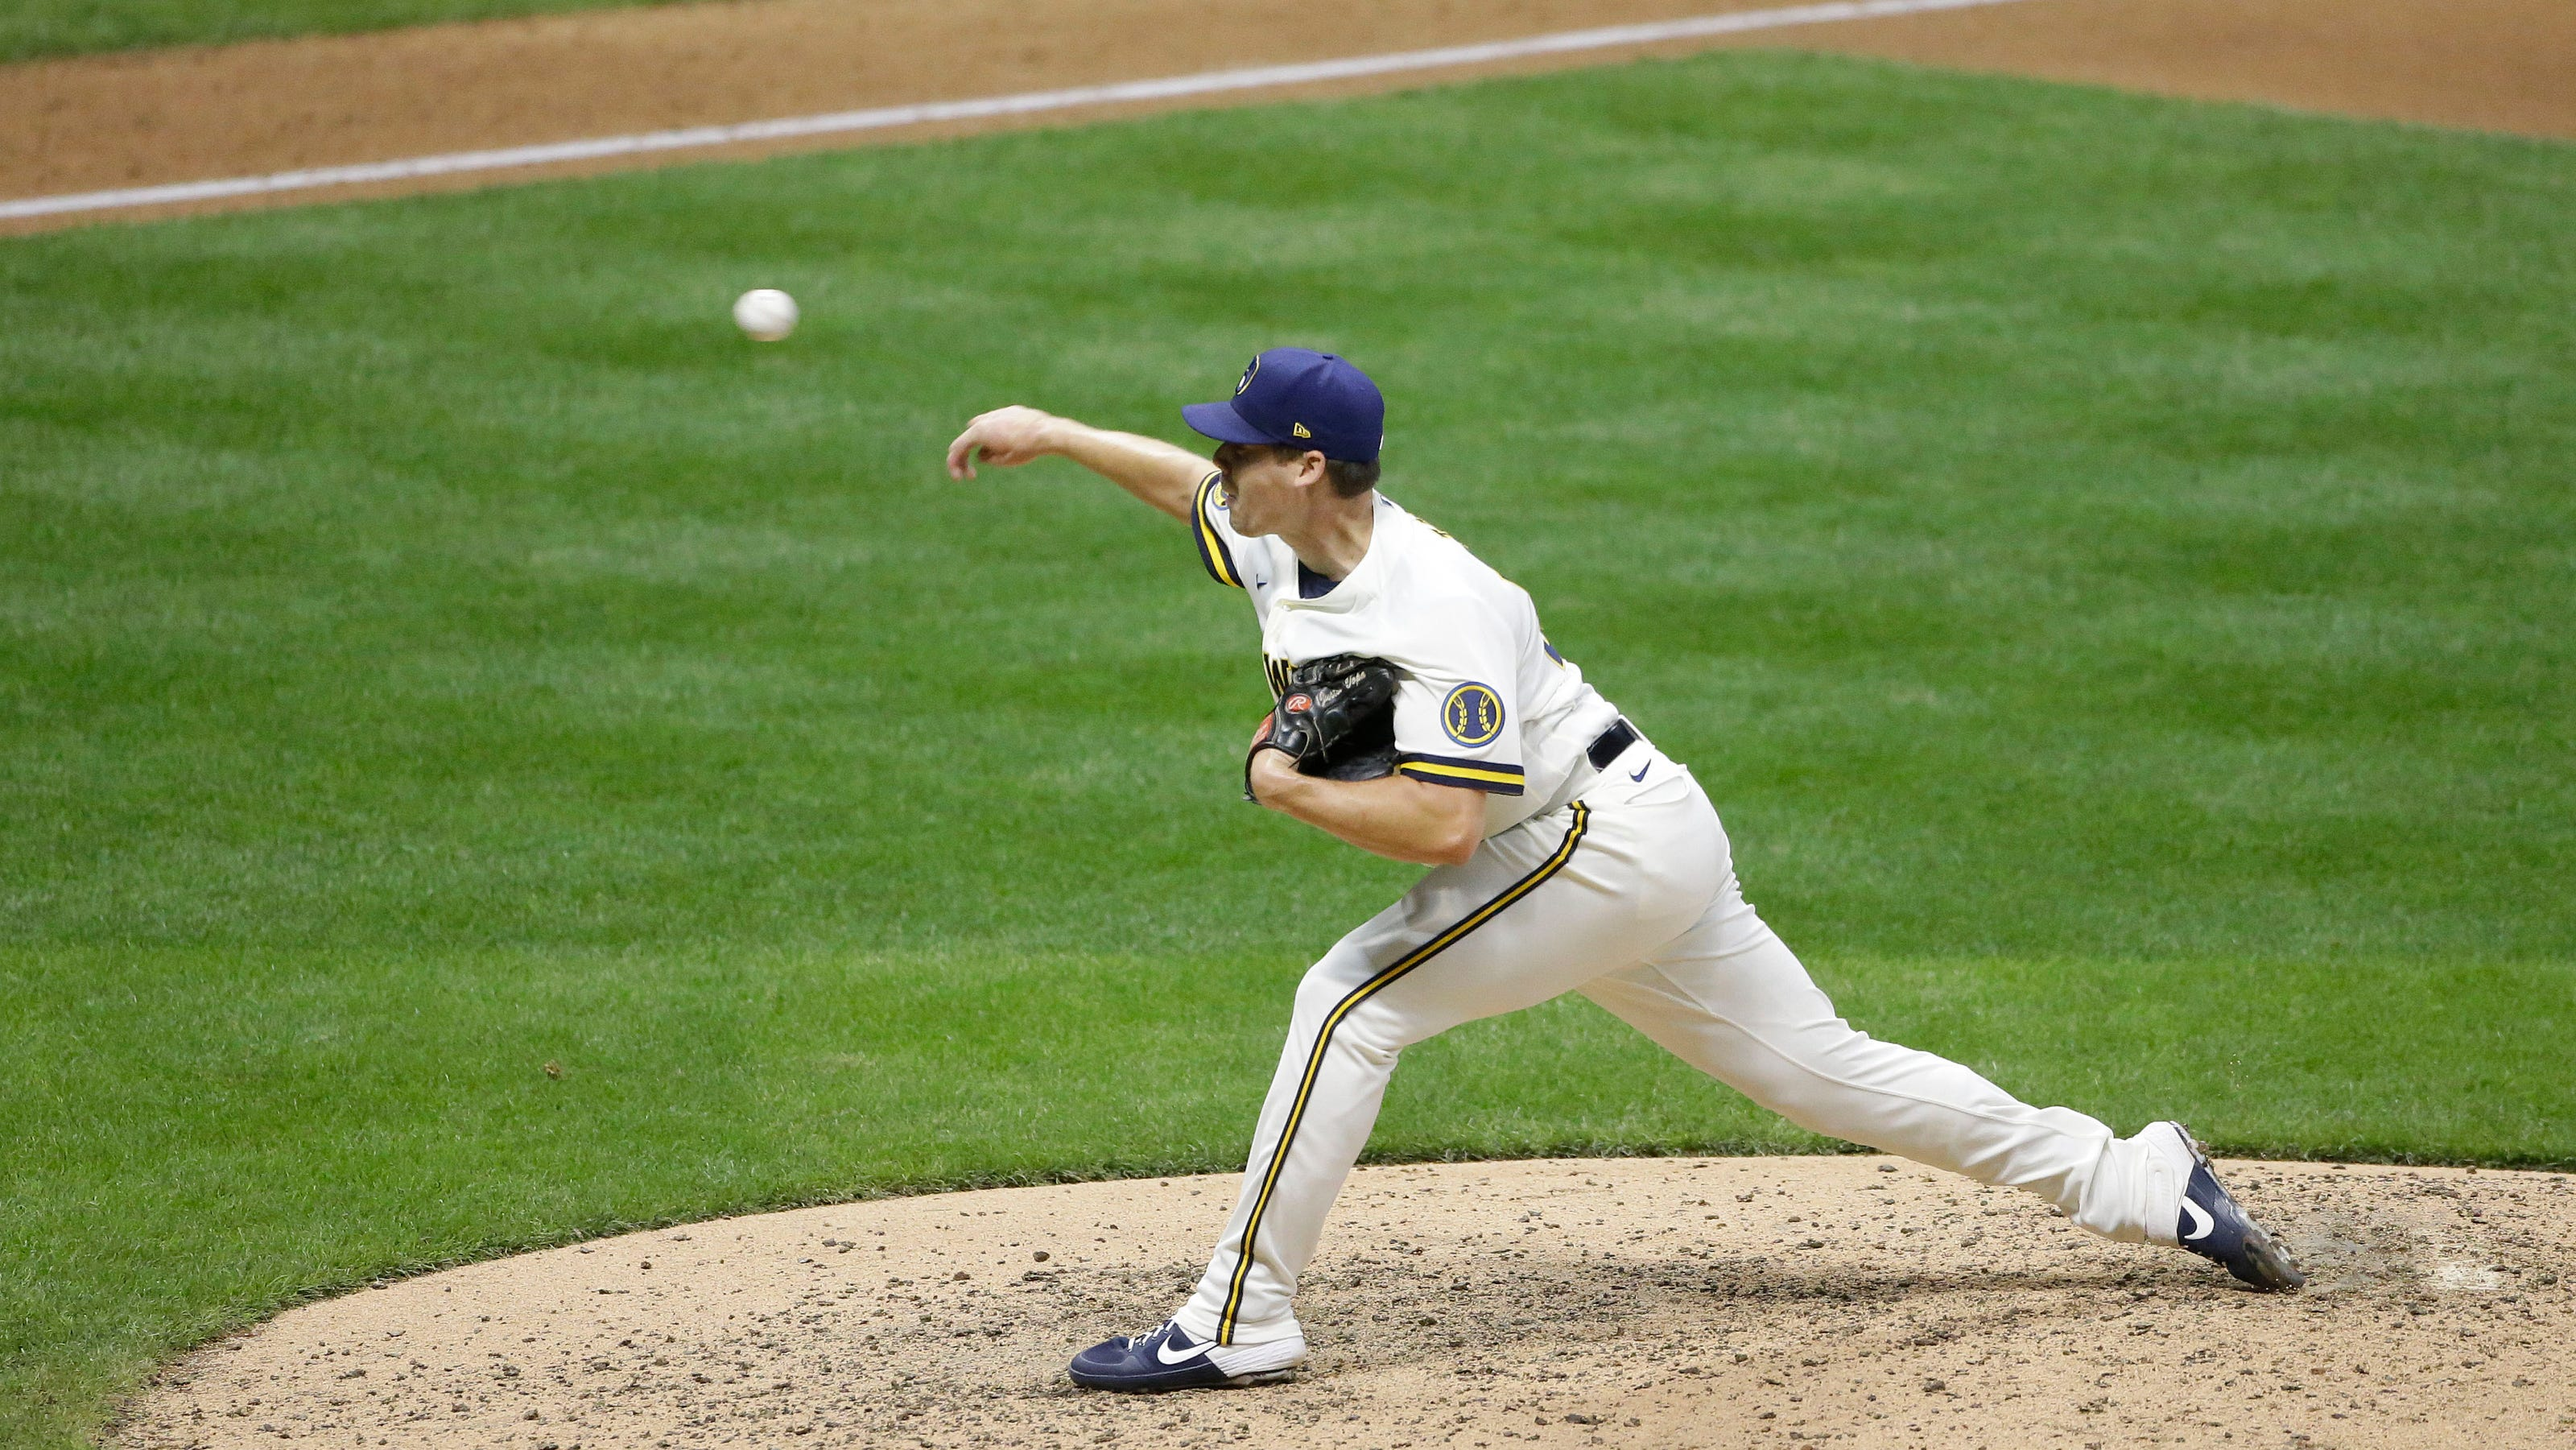 Milwaukee Brewers' Justin Topa pitches two innings in MLB debut